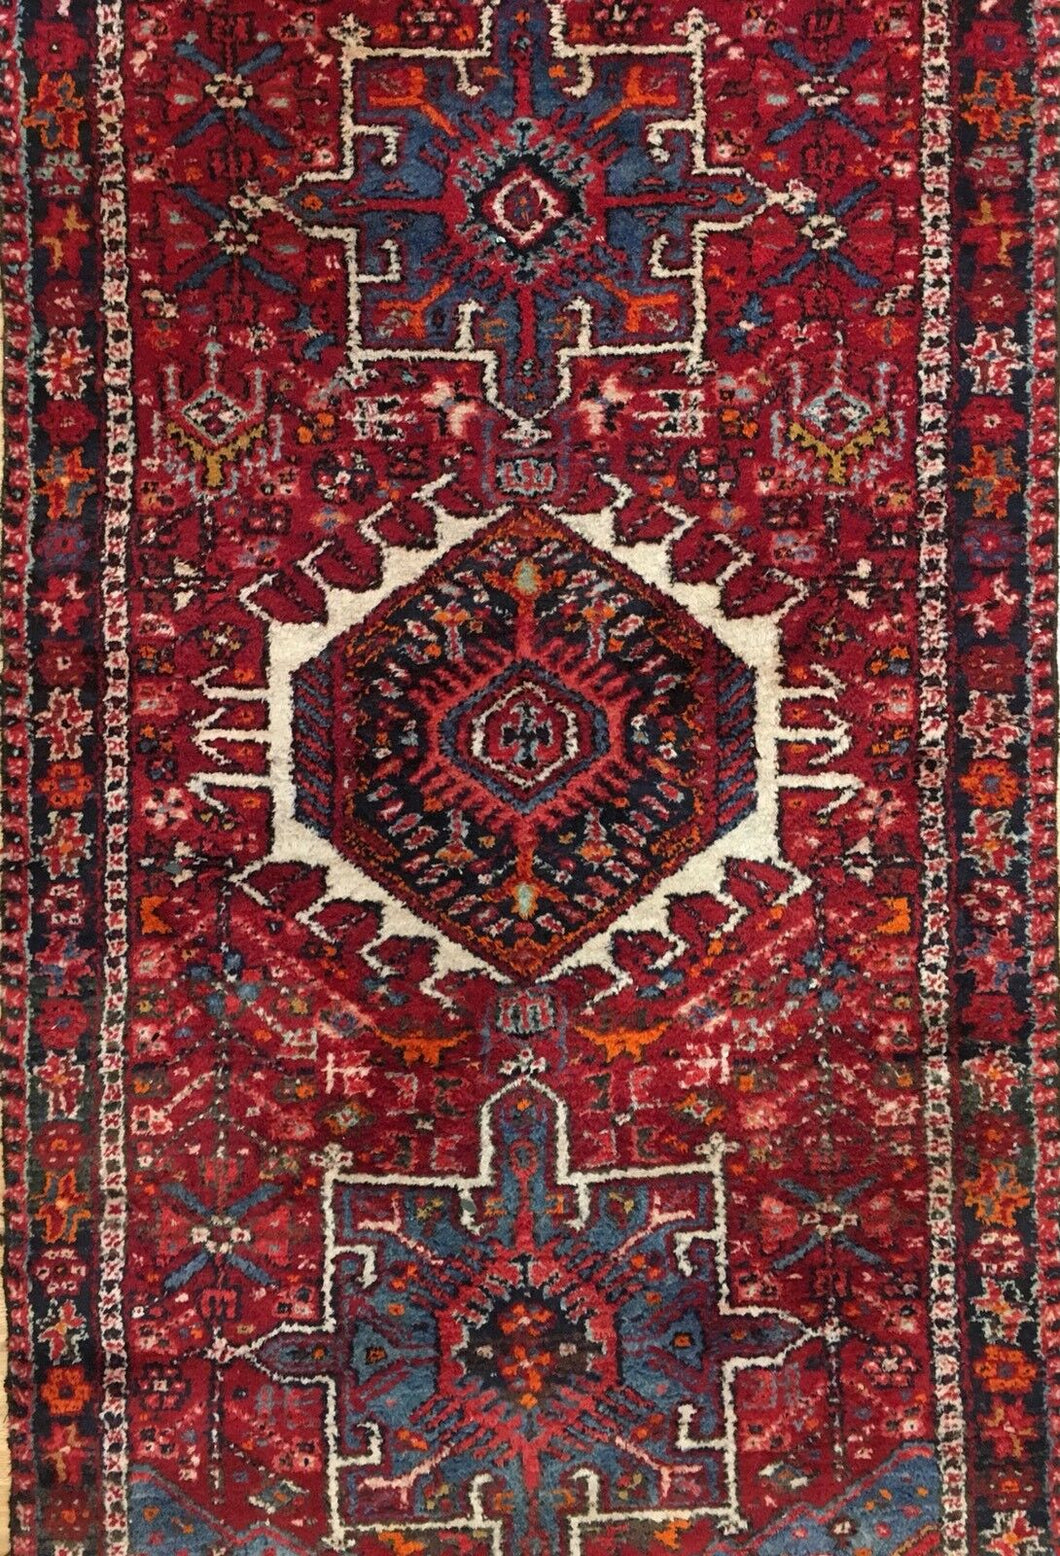 Handsome Heriz - 1940s Antique Persian Runner - Tribal Rug - 3'2